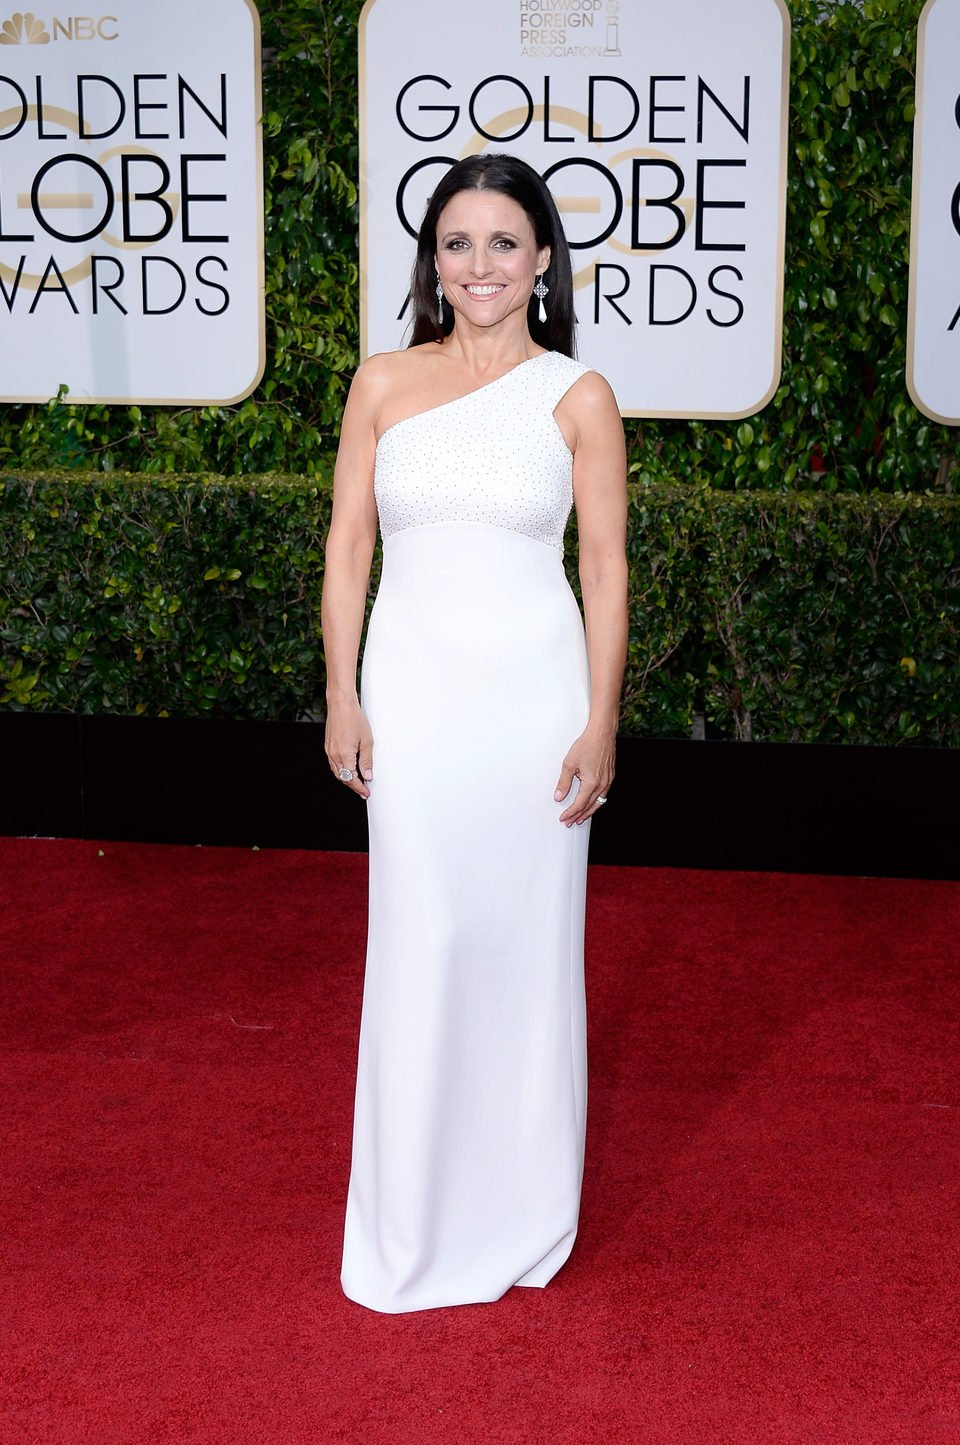 Julia Louis-Dreyfus at the Golden Globes 2015 red carpet